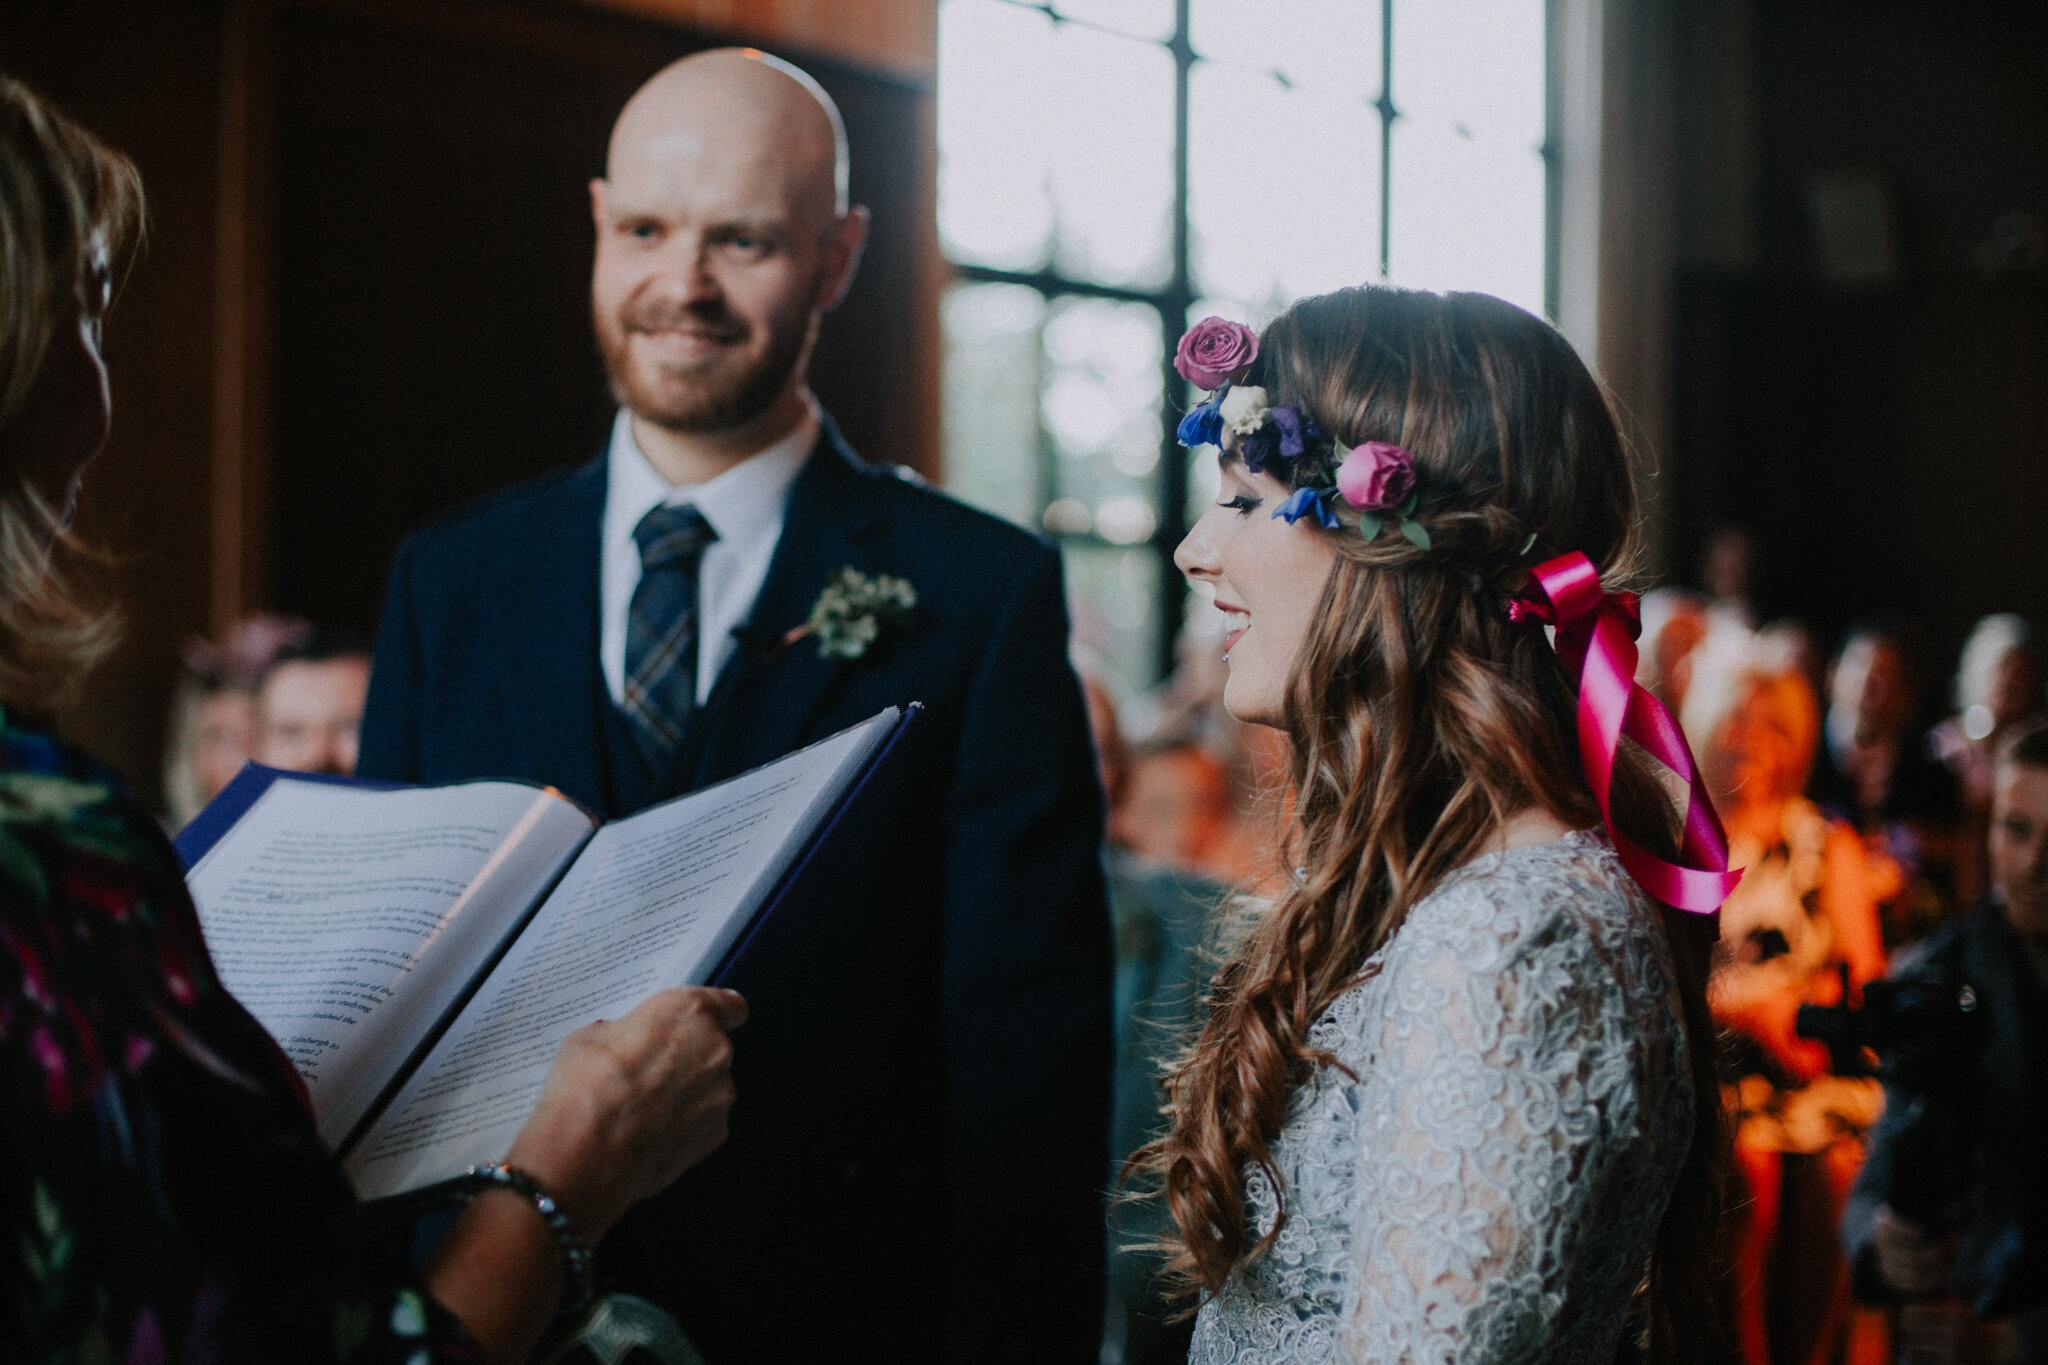 Close up shot of the bride and groom at the ceremony at West Brewery in Glasgow